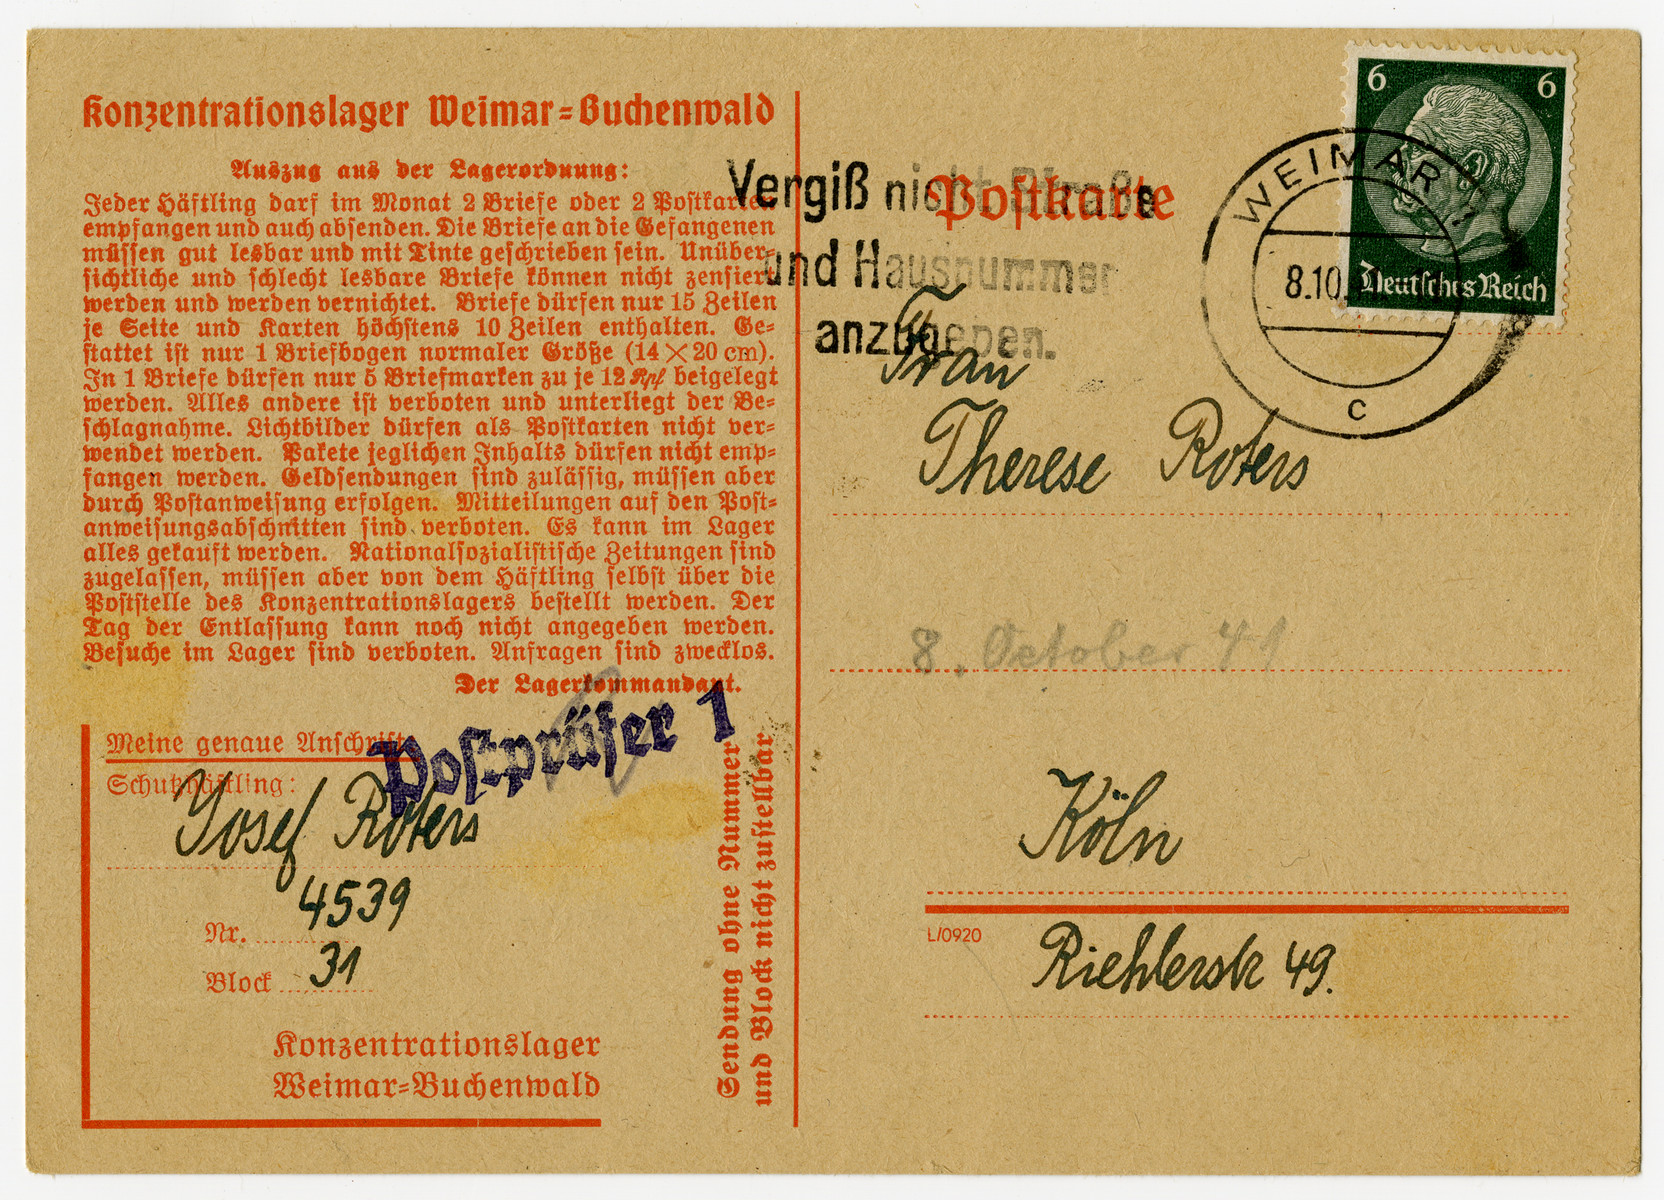 Postcard sent from the Buchenwald concentration camp.